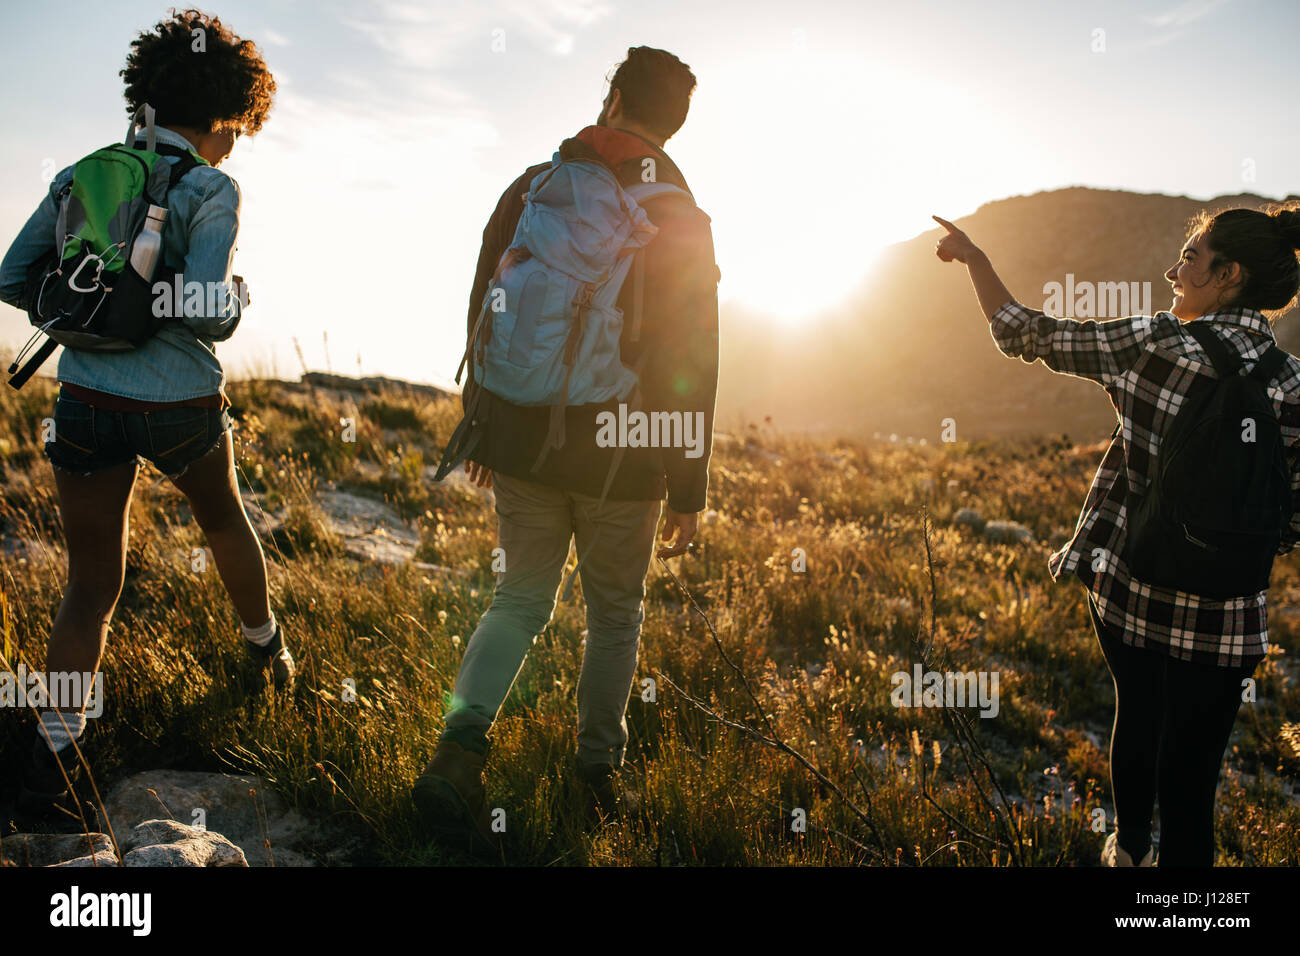 Rear view shot of young people on countryside hiking. Group of hikers walking on hill on a summer day. - Stock Image